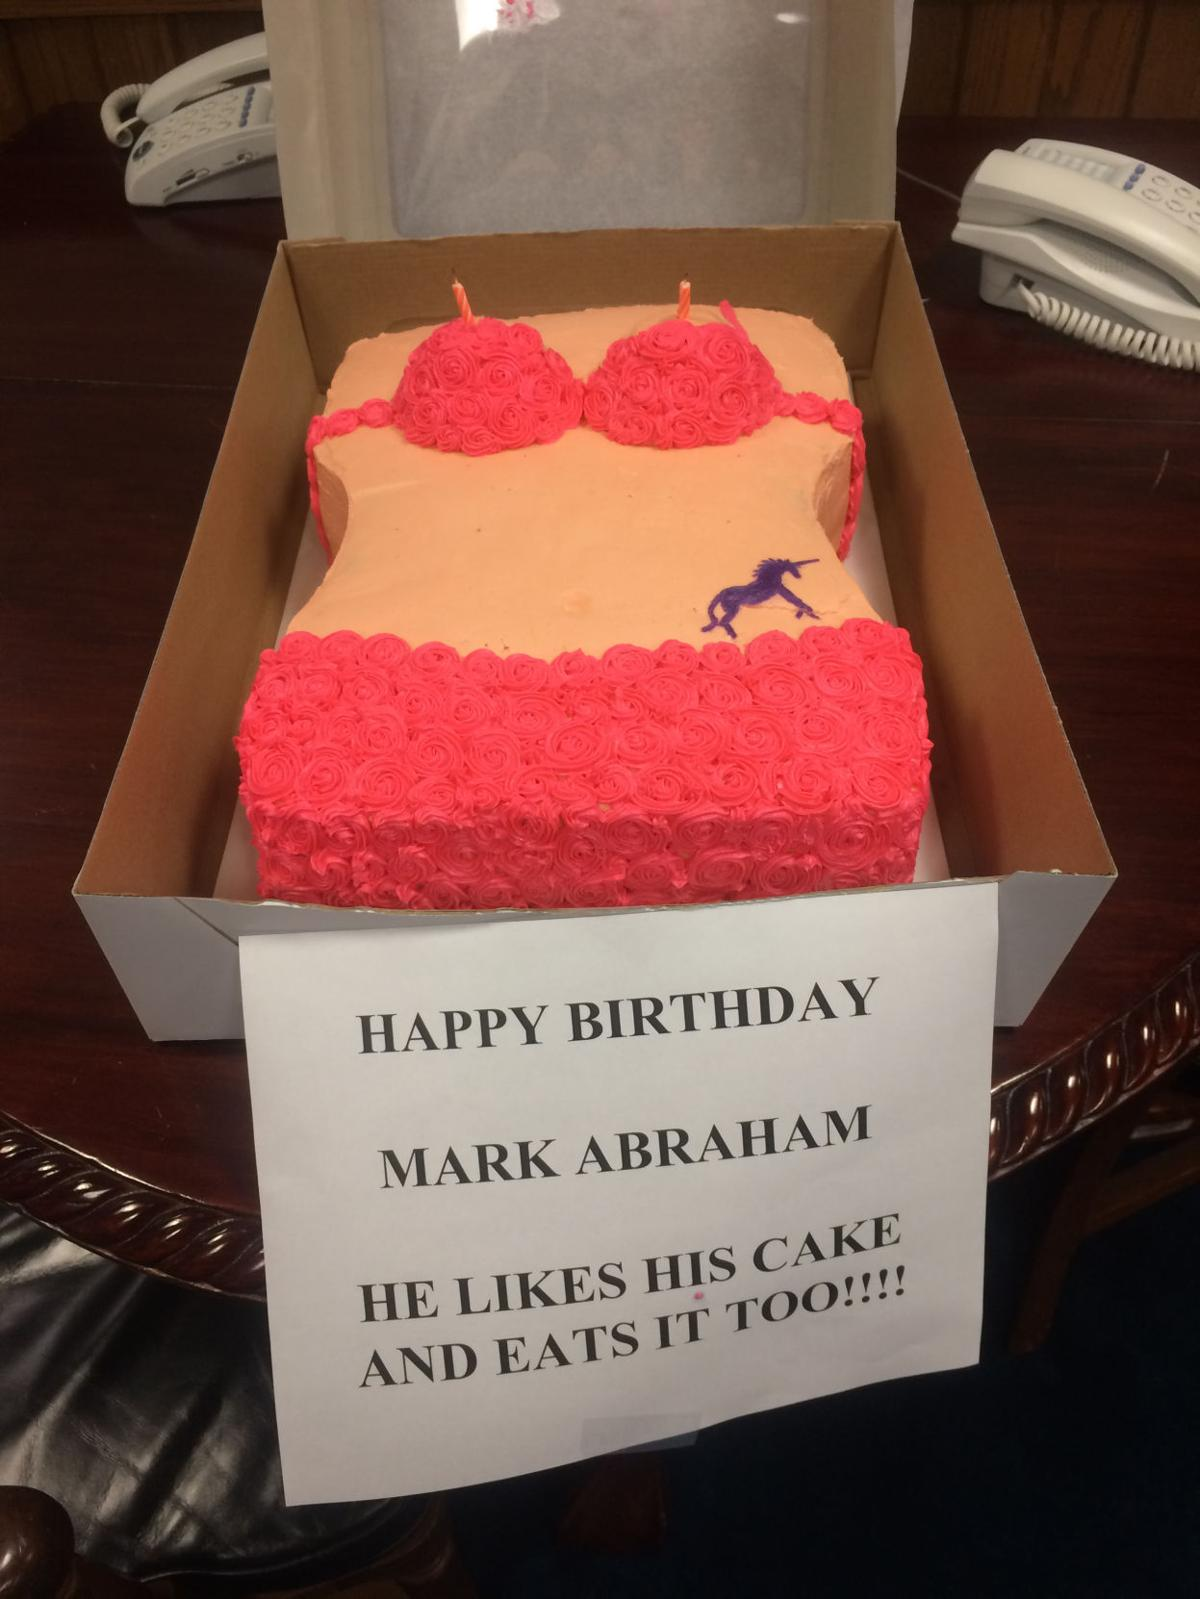 Bikini Birthday Cake At State Capitol Stirs Anger And Disgust